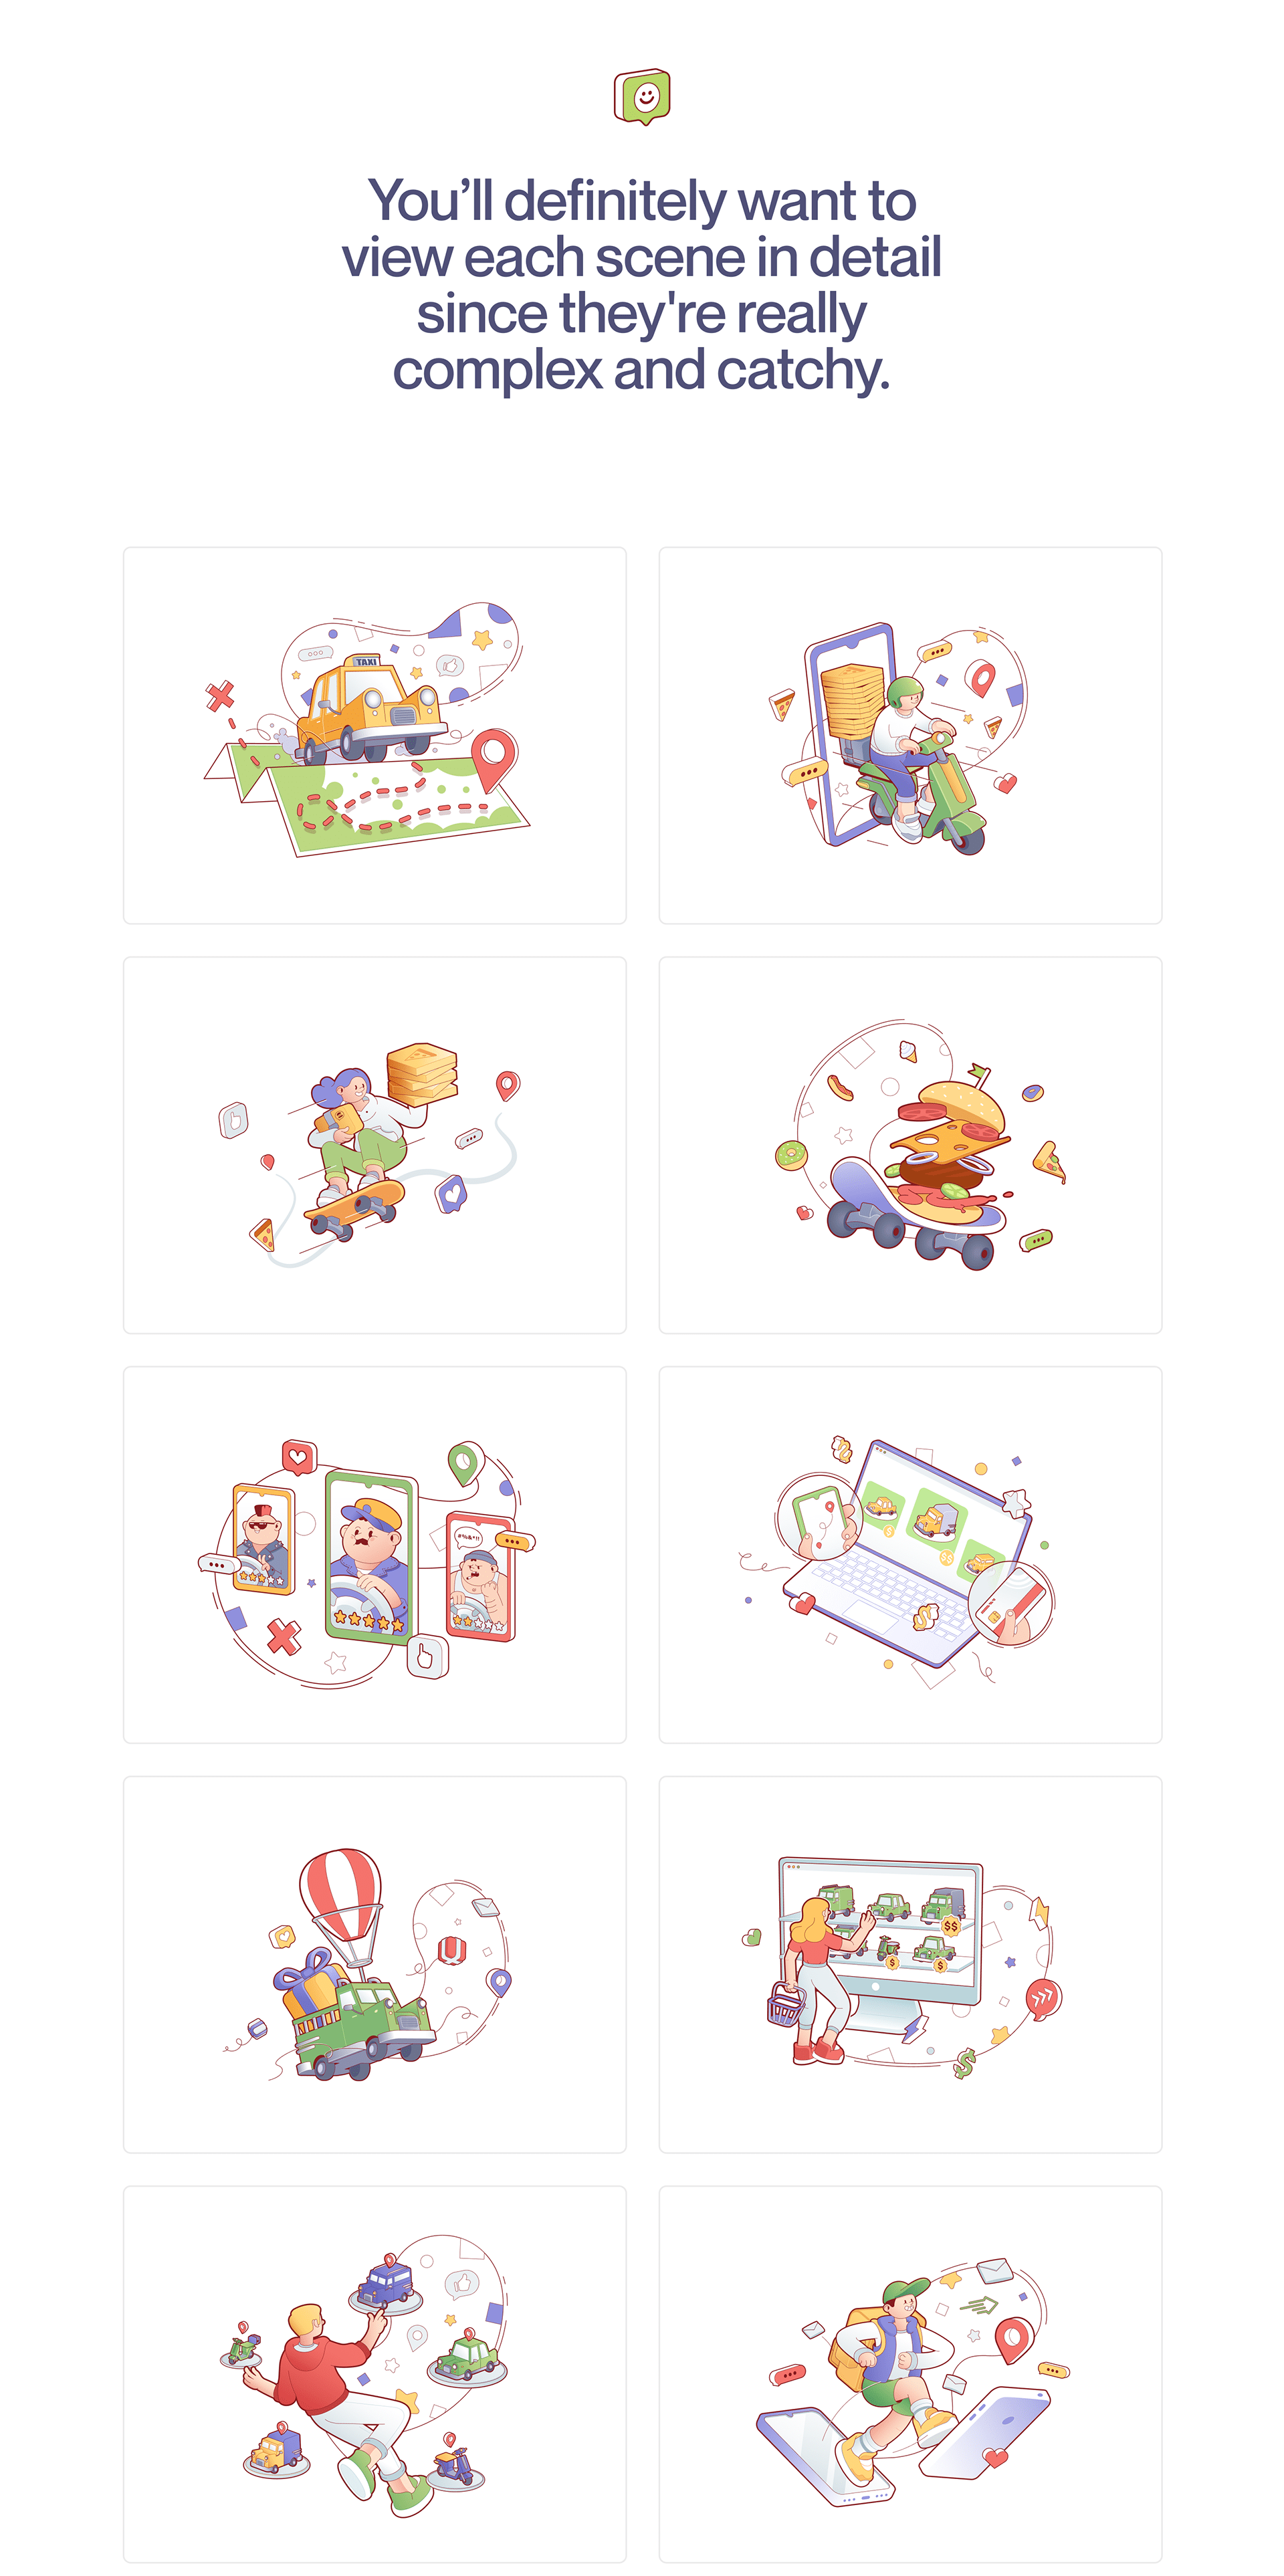 Delivery Man illustrations